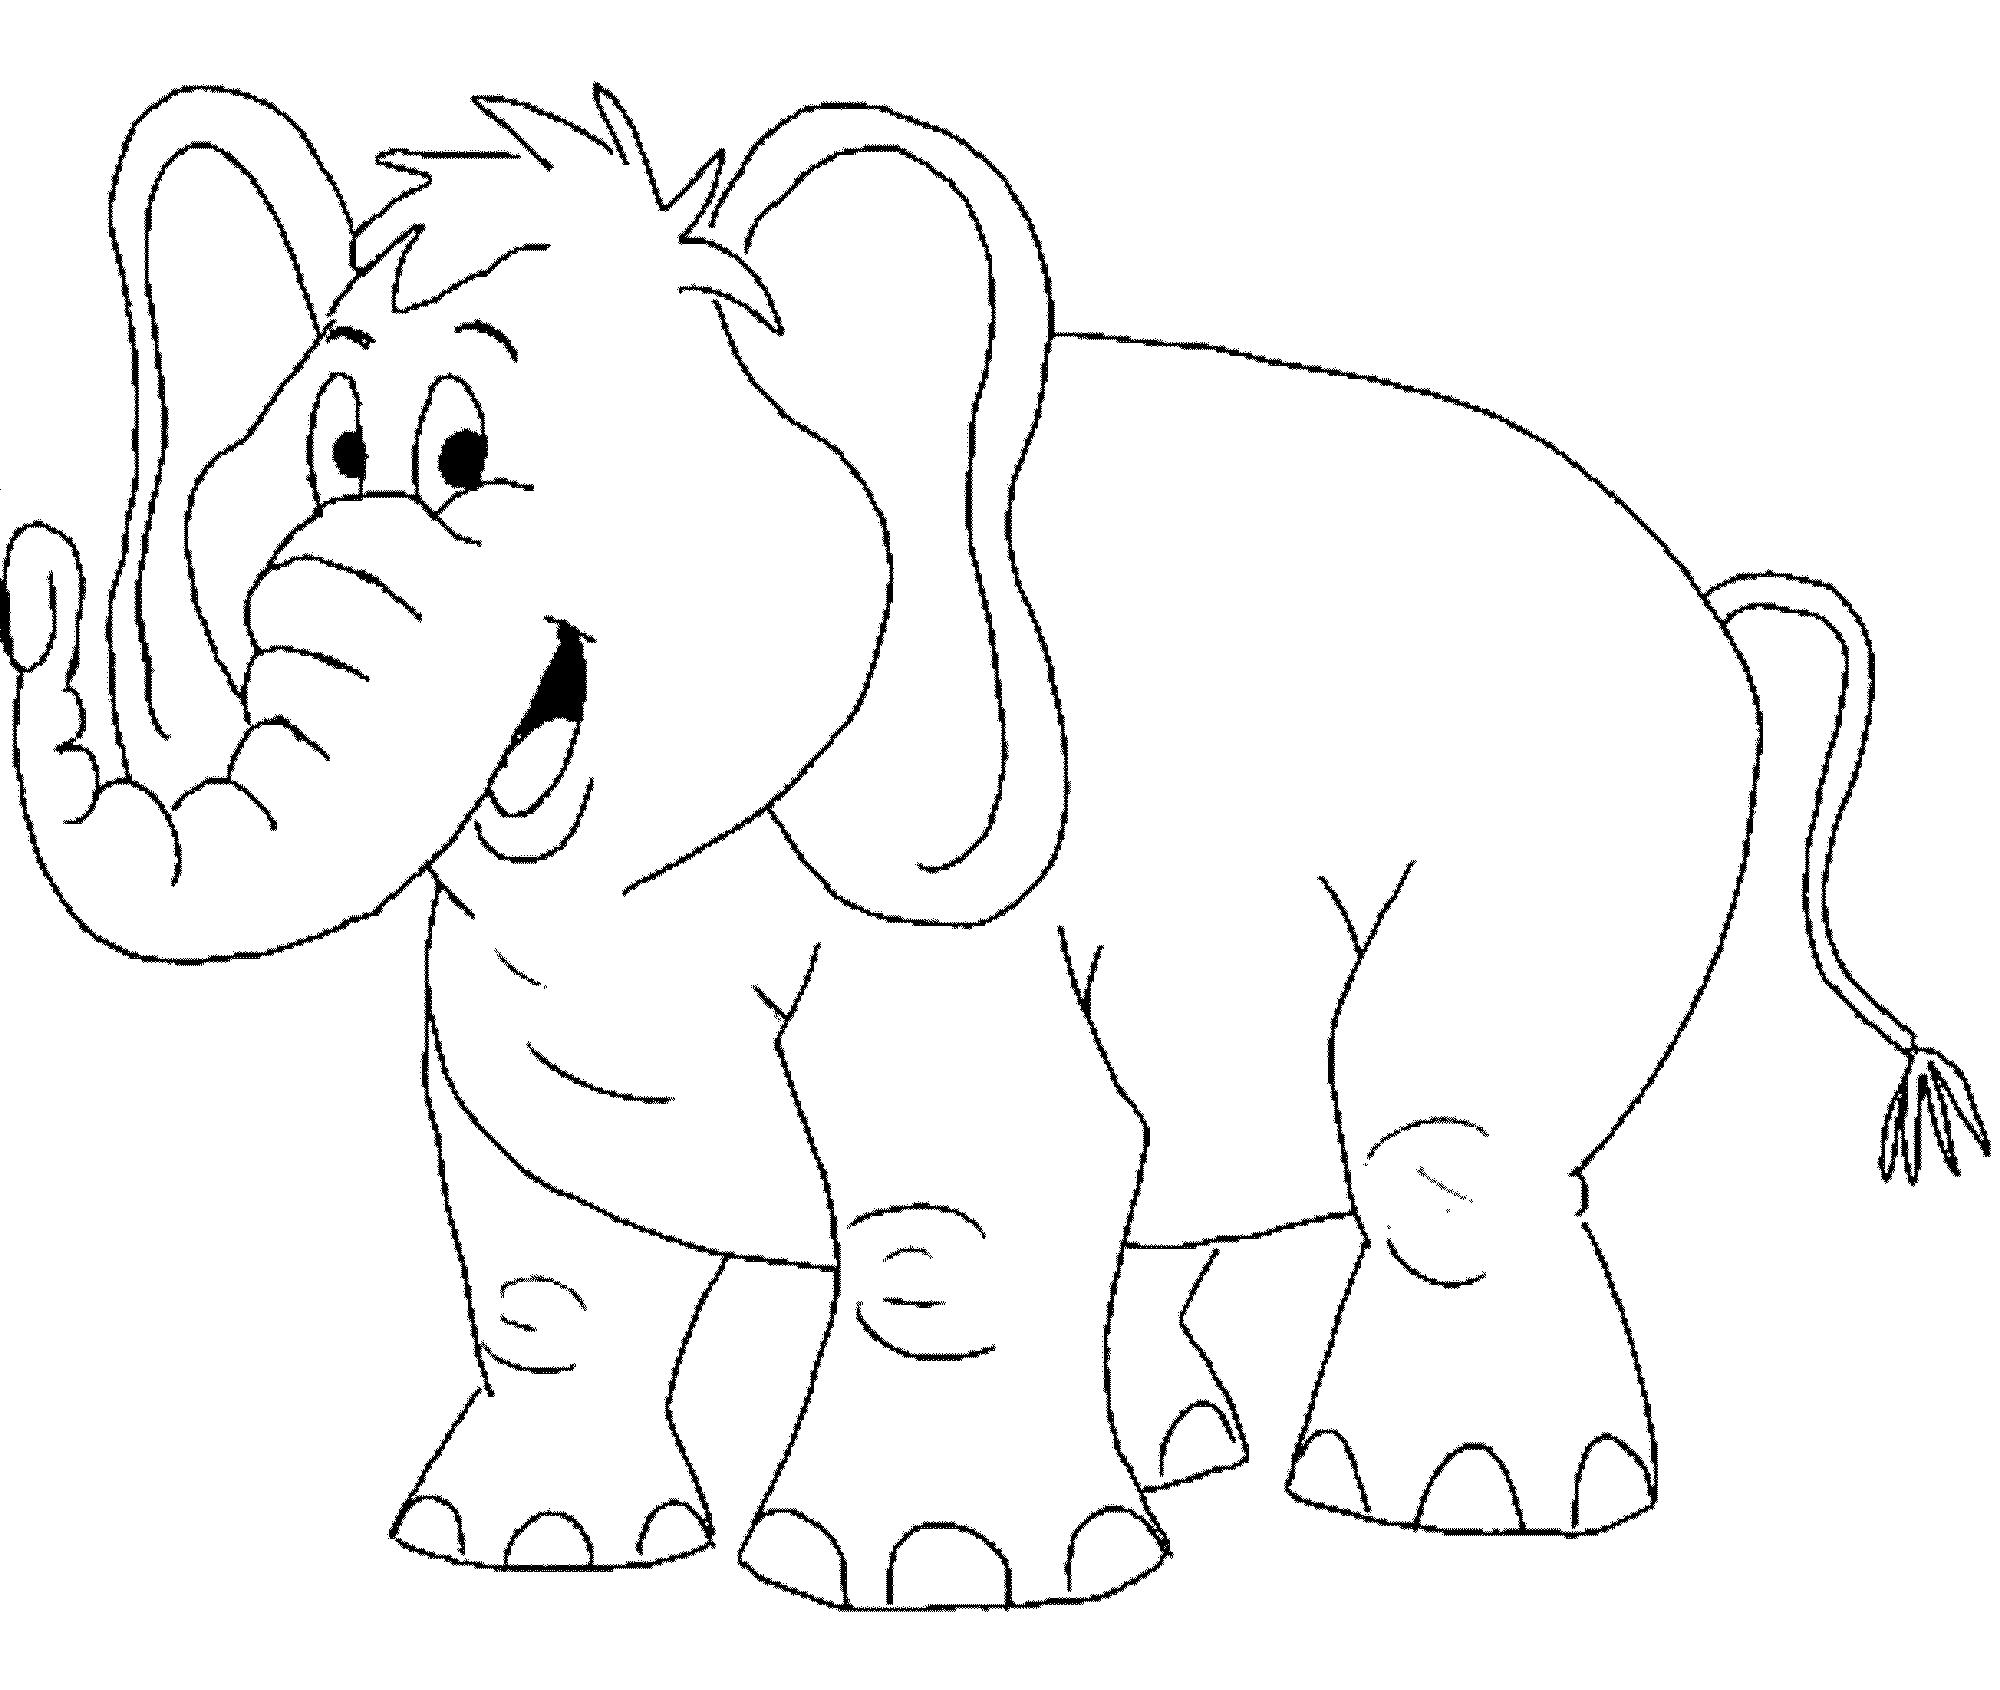 toddler coloring pages to print. elephant coloring pages for toddlers Print  Download Teaching Kids through Elephant Coloring Pages